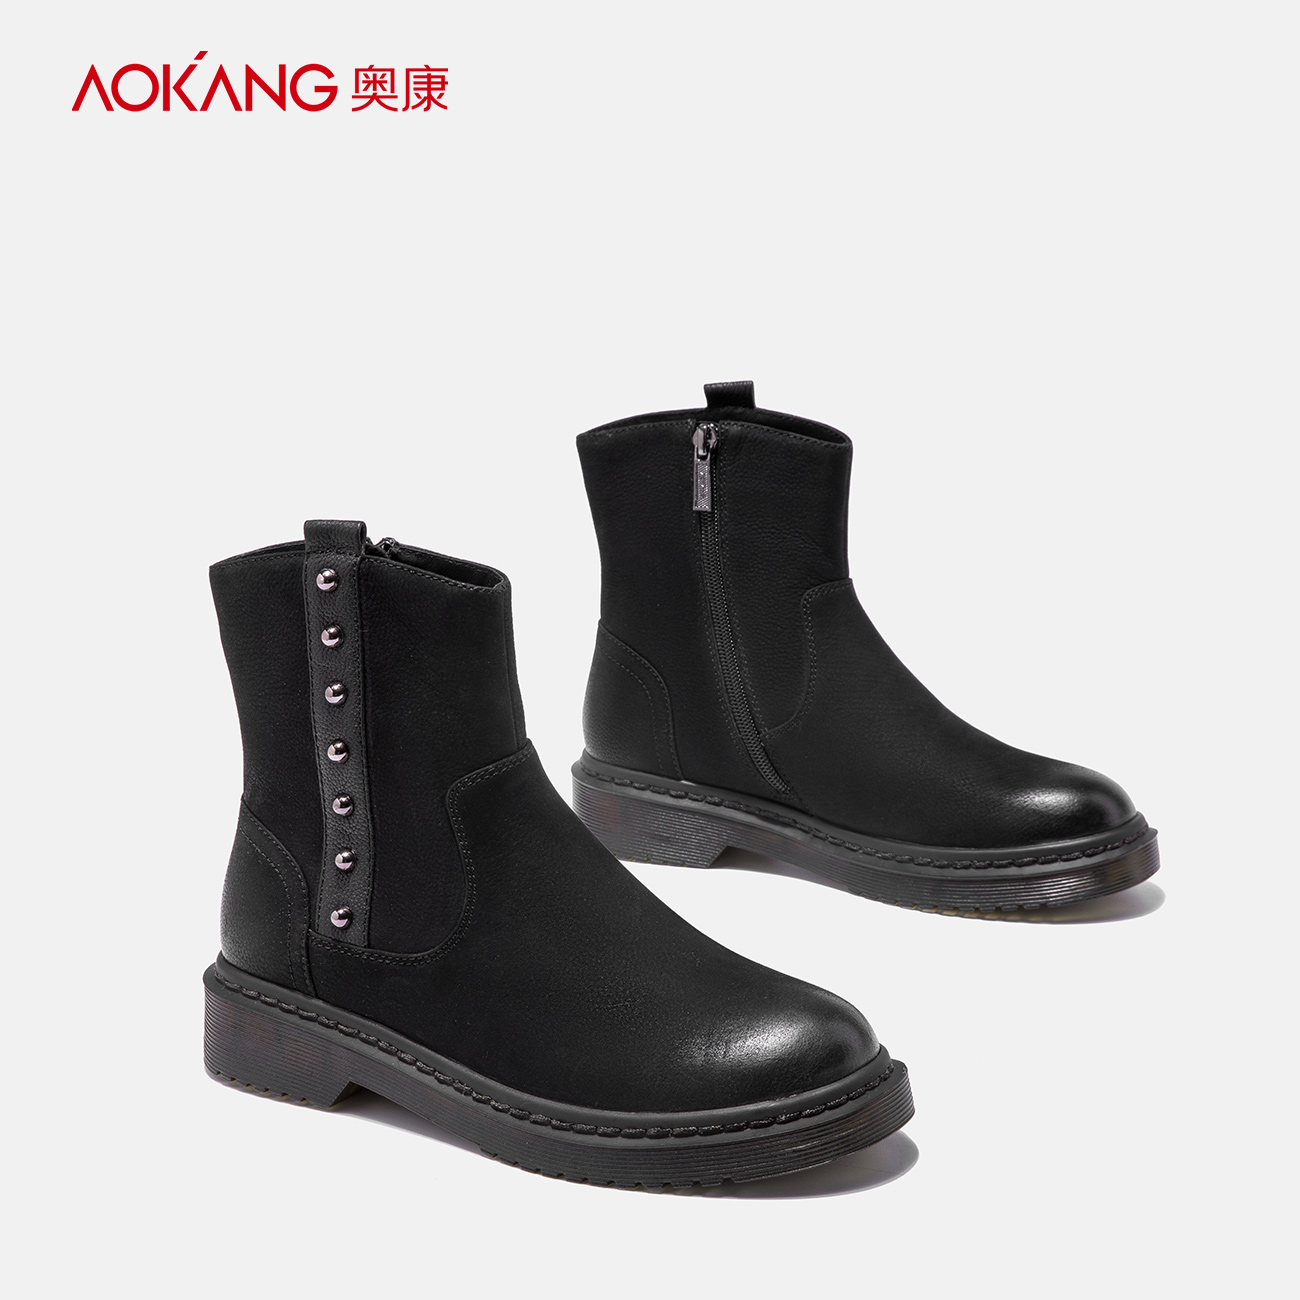 Aokang women's shoes 2018 winter new rivet flat with youth round head women's boots Korean leather fashion short boots